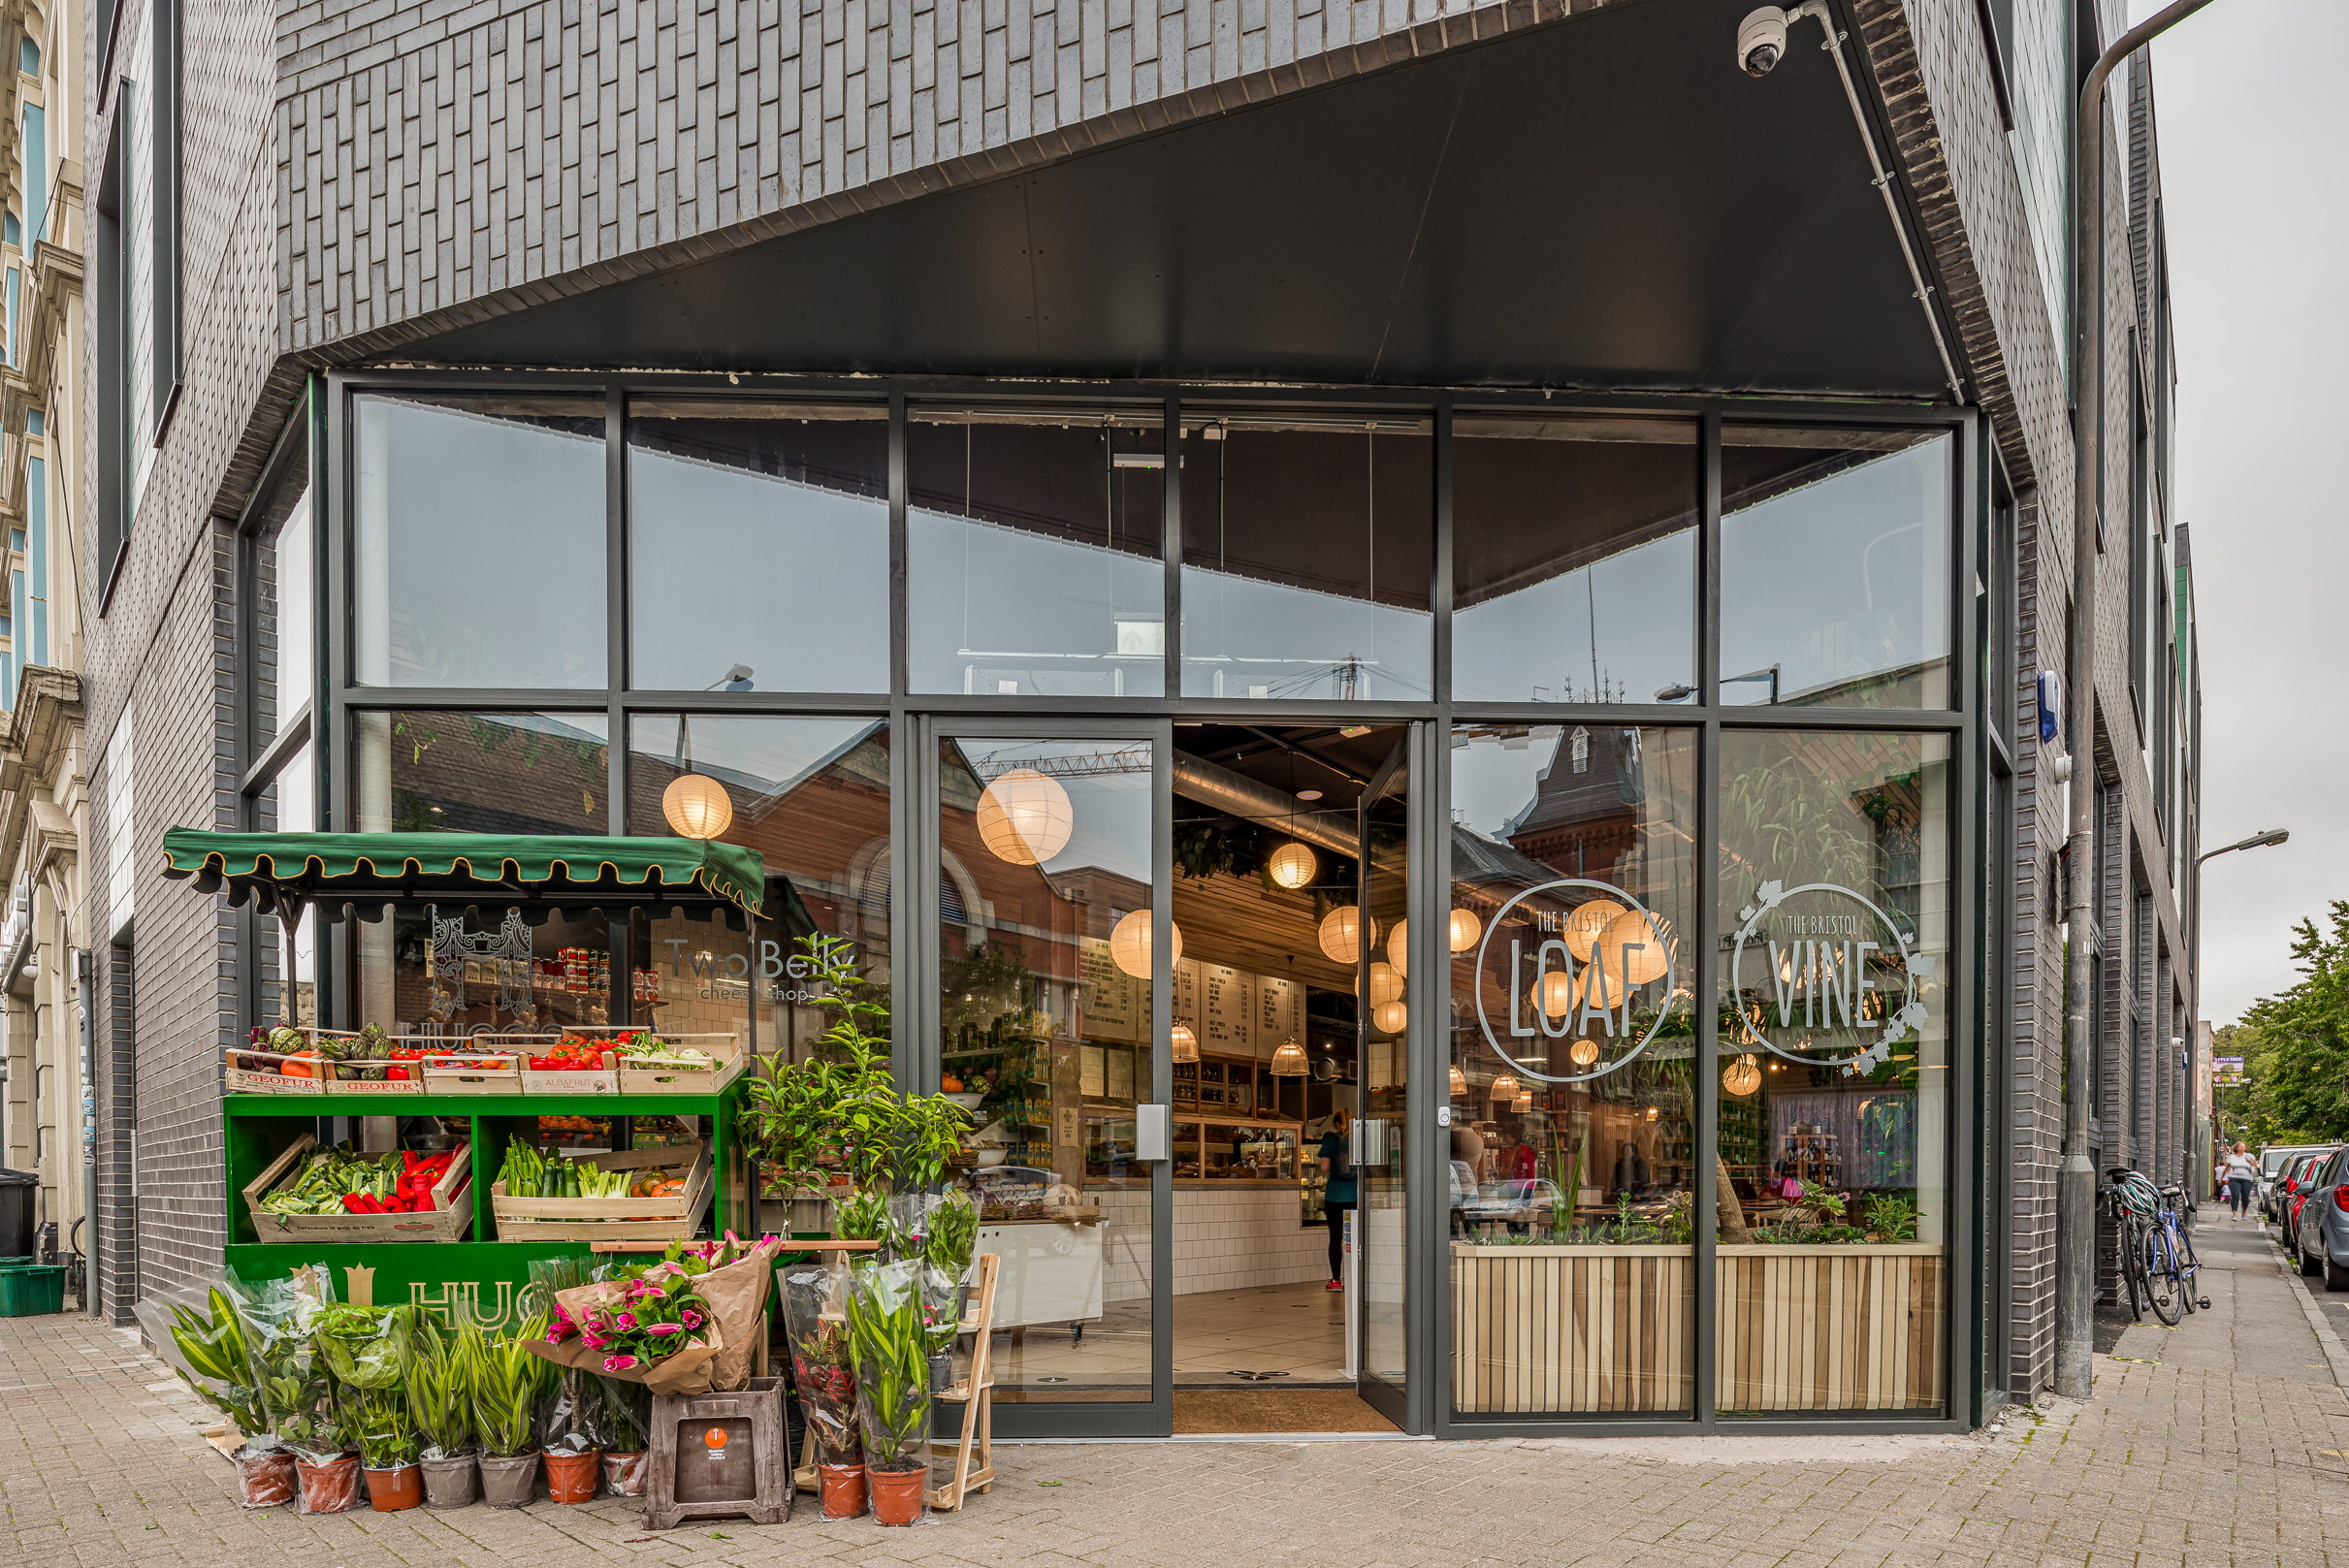 Phoenix Wharf helps The Bristol Loaf rise in new location